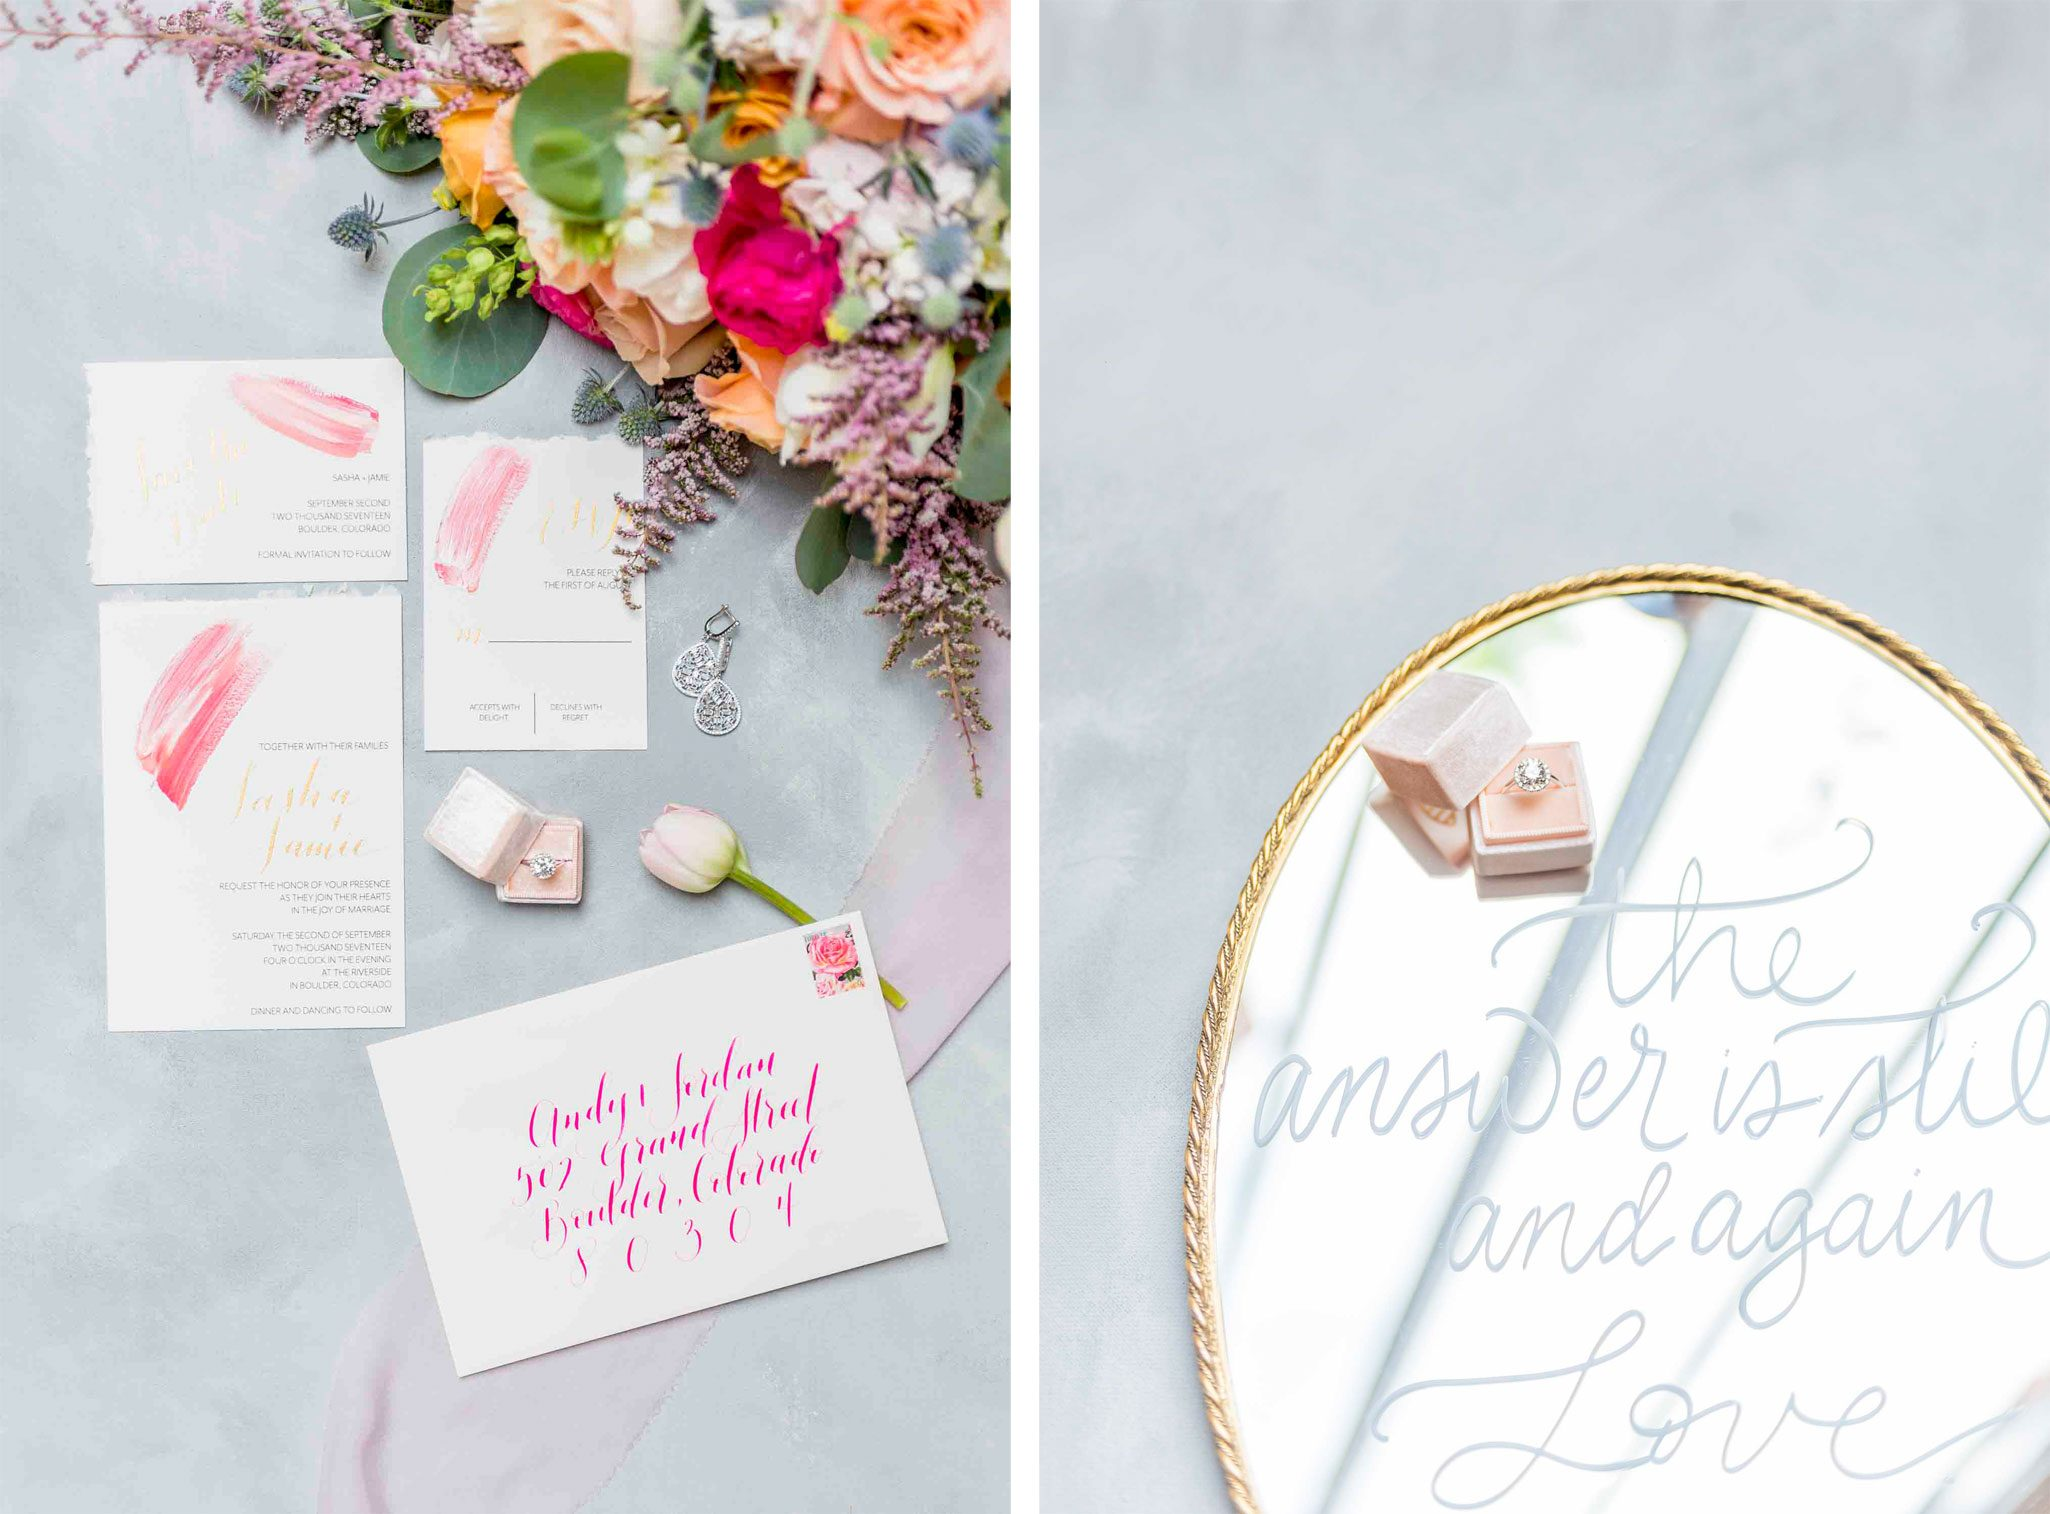 Wedding invitation suite on soft linen white paper with gold and fuchsia accents